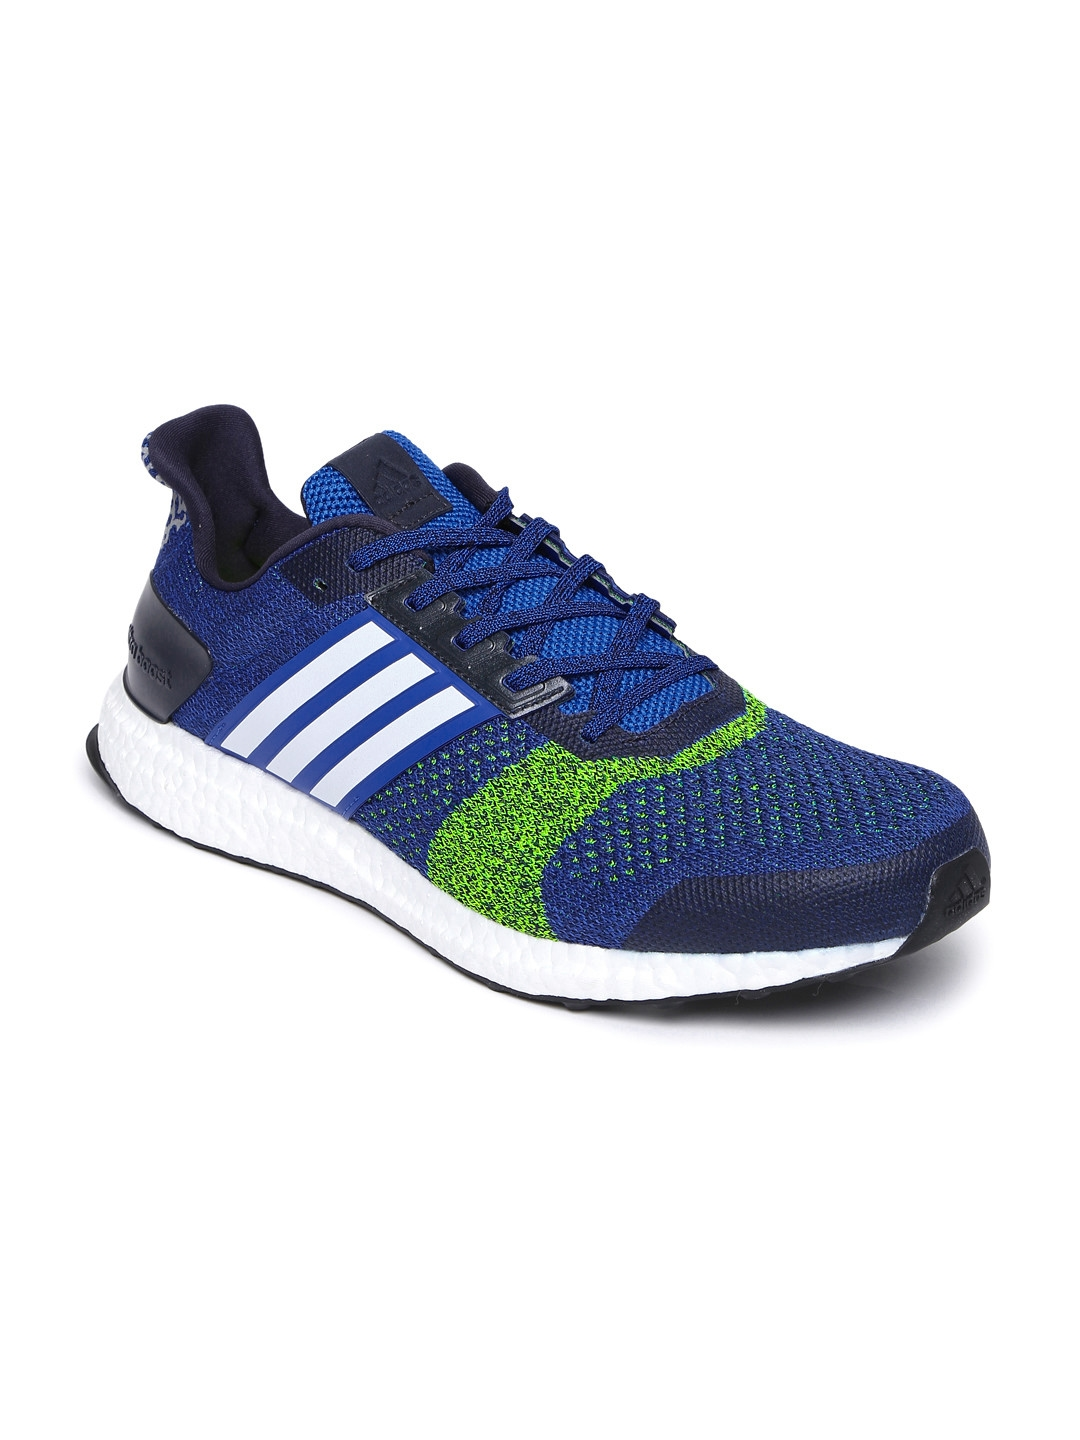 838b2cdd6 Buy ADIDAS Men Blue   Green Ultra Boost ST M Running Shoes - Sports ...